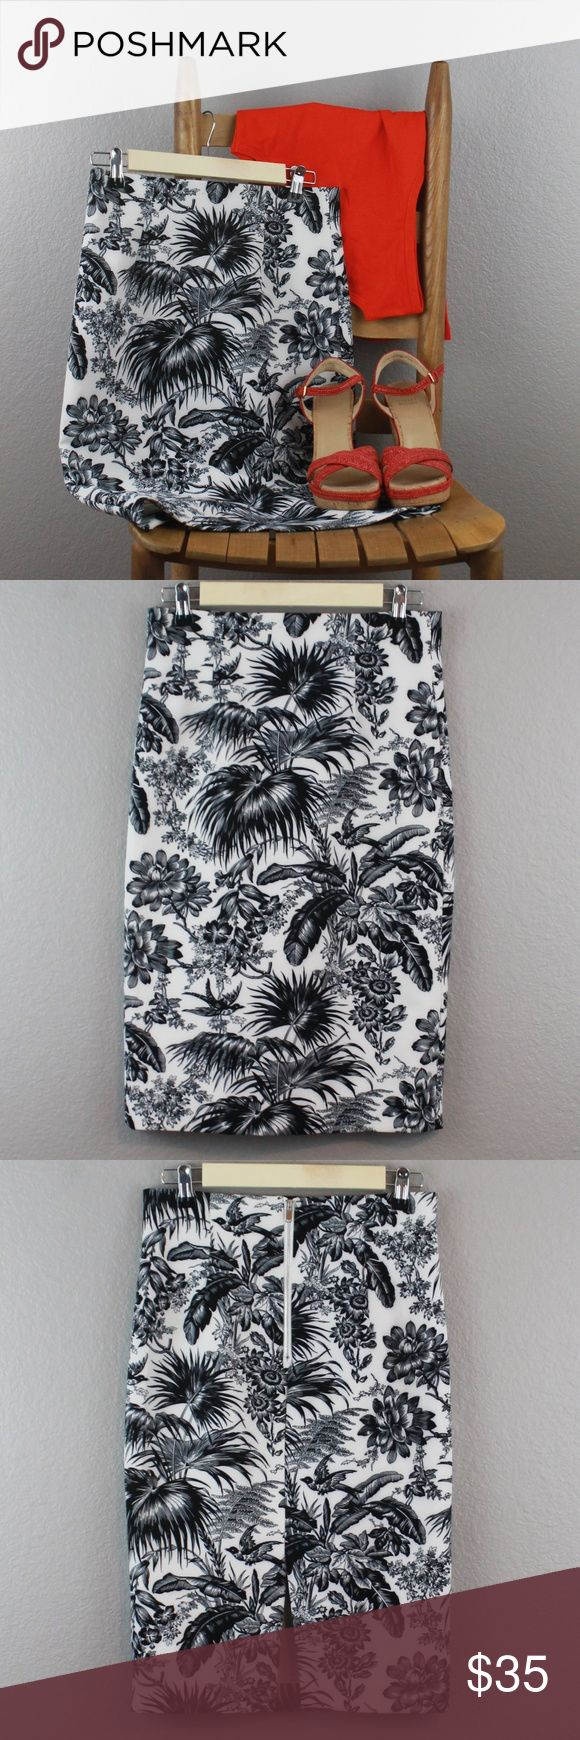 "CATHERINE MALANDRINO | tropical pencil skirt Nothing says professional like a pencil skirt! This tropical white & black piece from Catherine Malandrino will garner compliments around the water cooler, especially when paired with a bright silk tank & colorful heels.  ◆Rear zipper; short rear slit; tropical print; pencil shape; lined  ◆90% poly, 10% spandex ◆Size 2; waist: 28"", hip: 33.5"" (measurements when relaxed)  ◆At knee; length: 25""  ◆Like new condition  SK0011 Catherine Malandrino…"